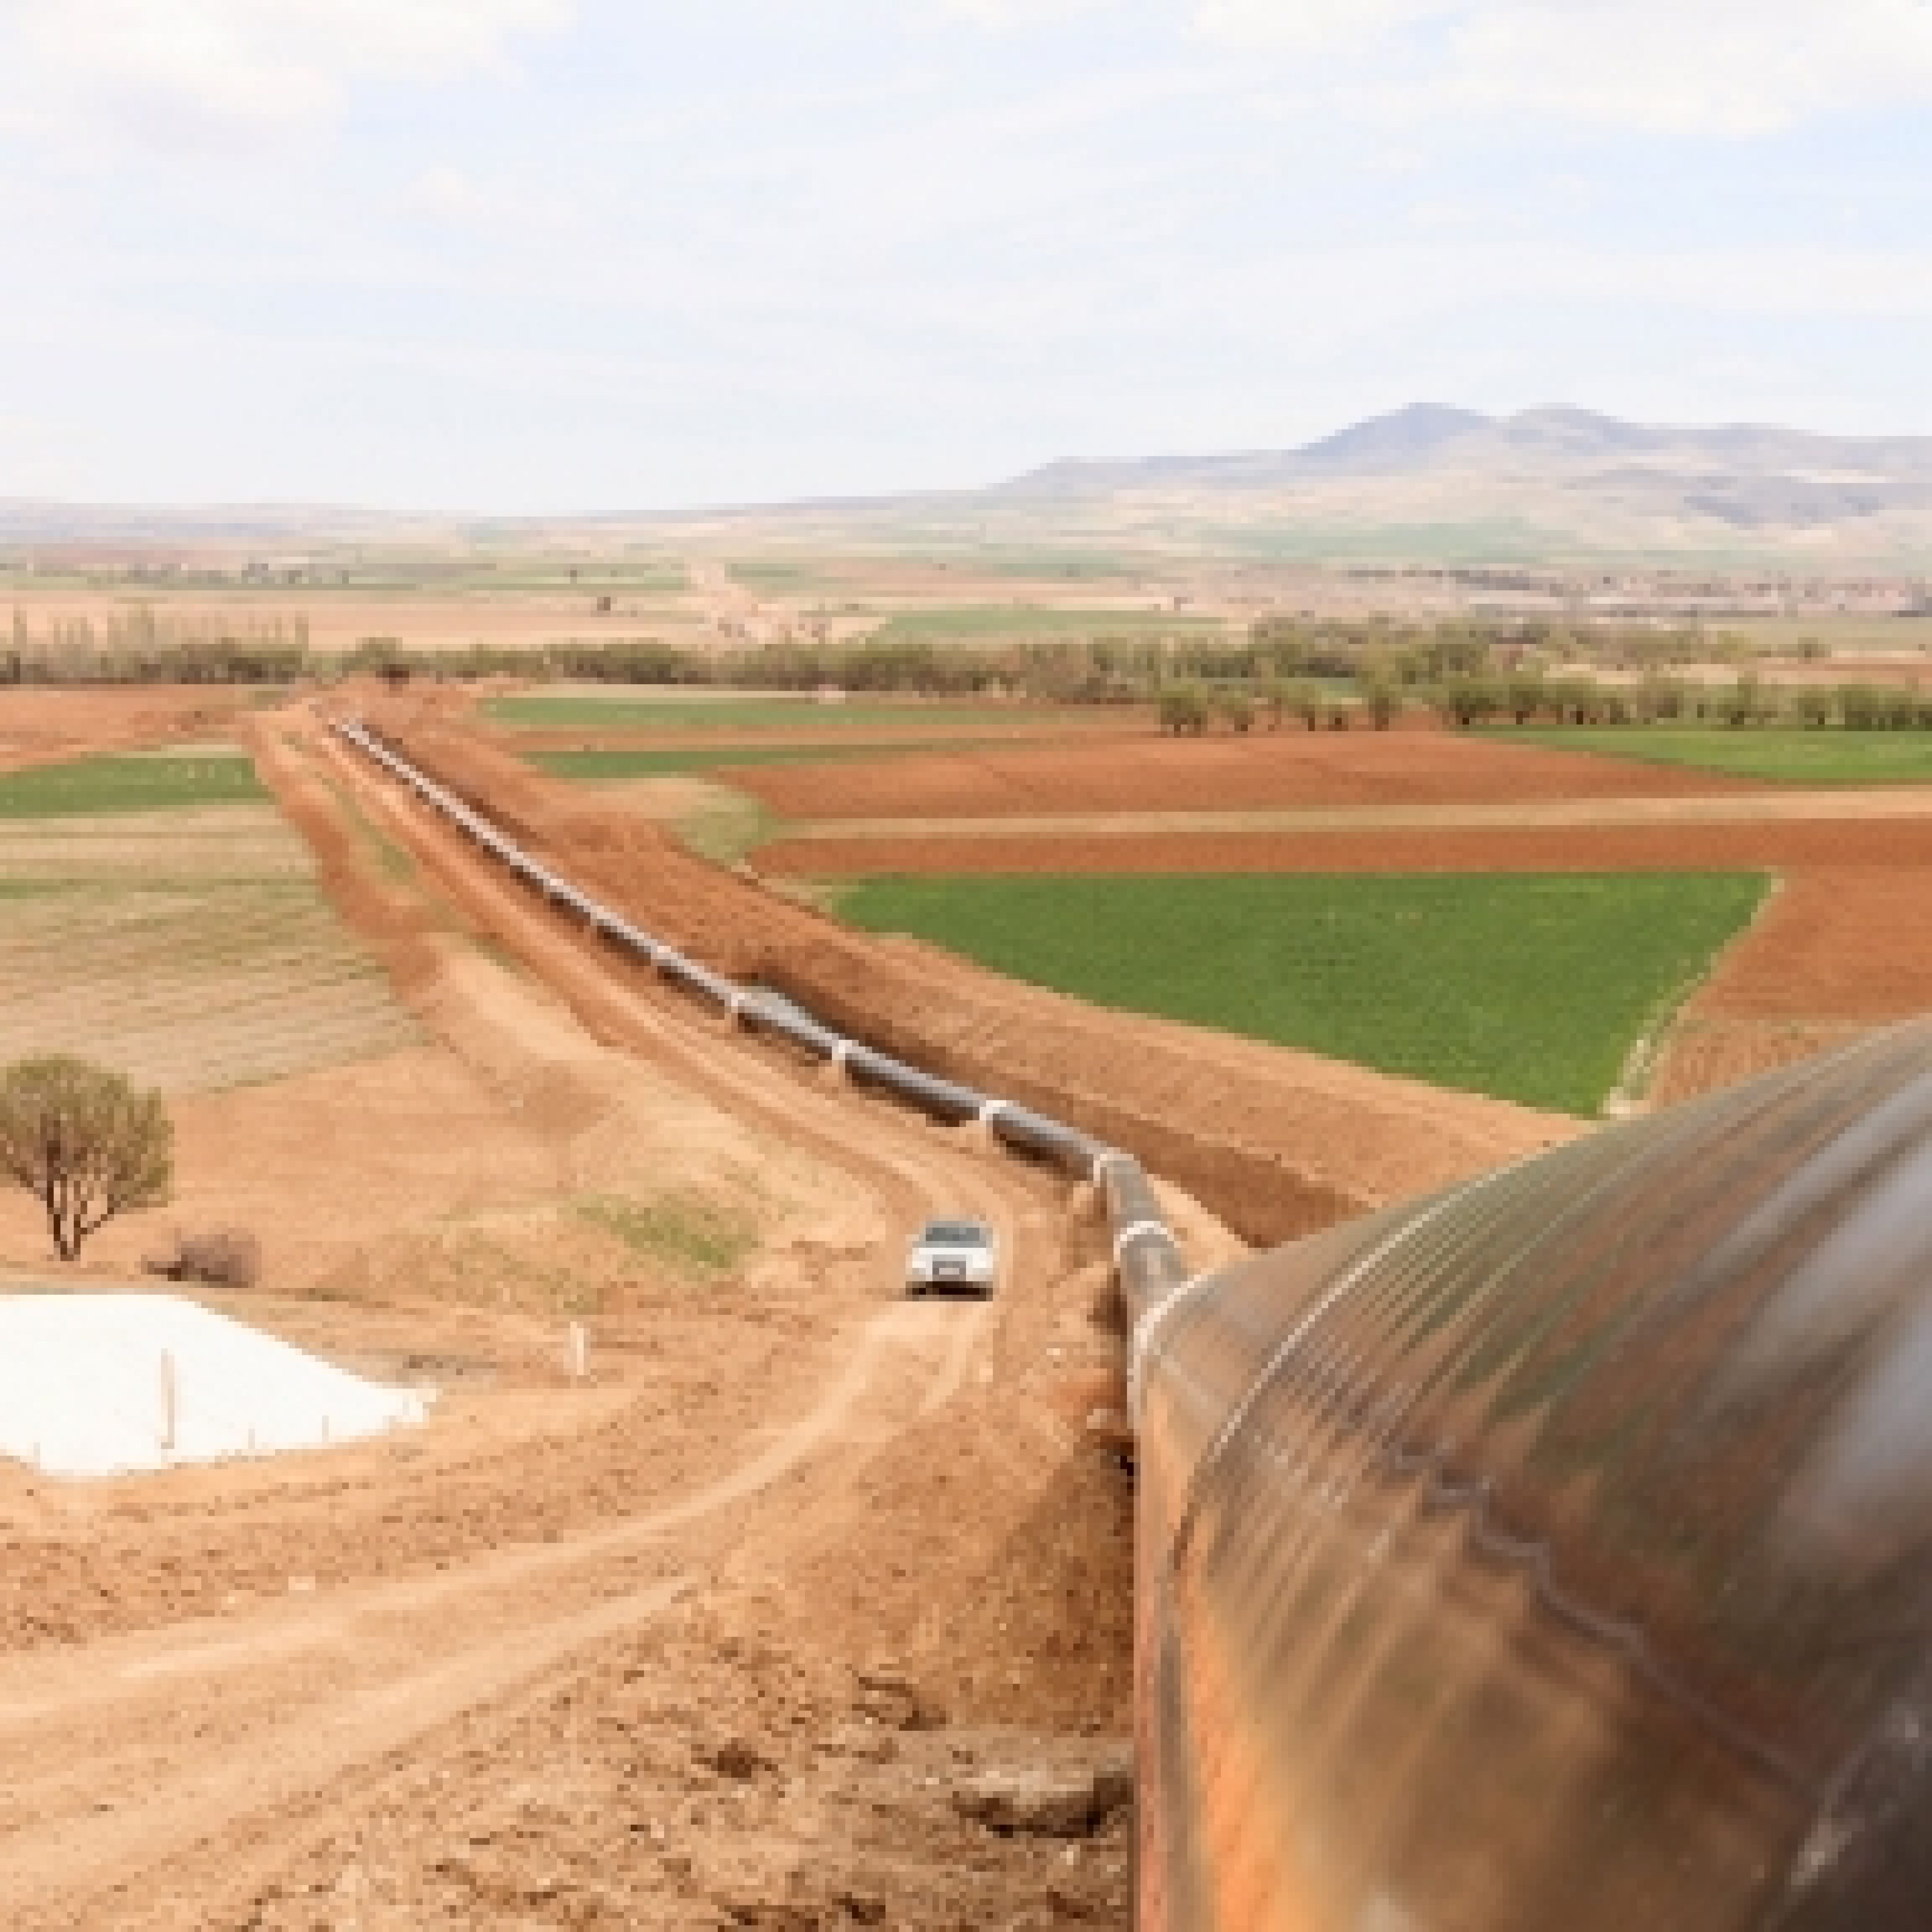 The new pipeline provides a gateway for new supplies of energy into Europe